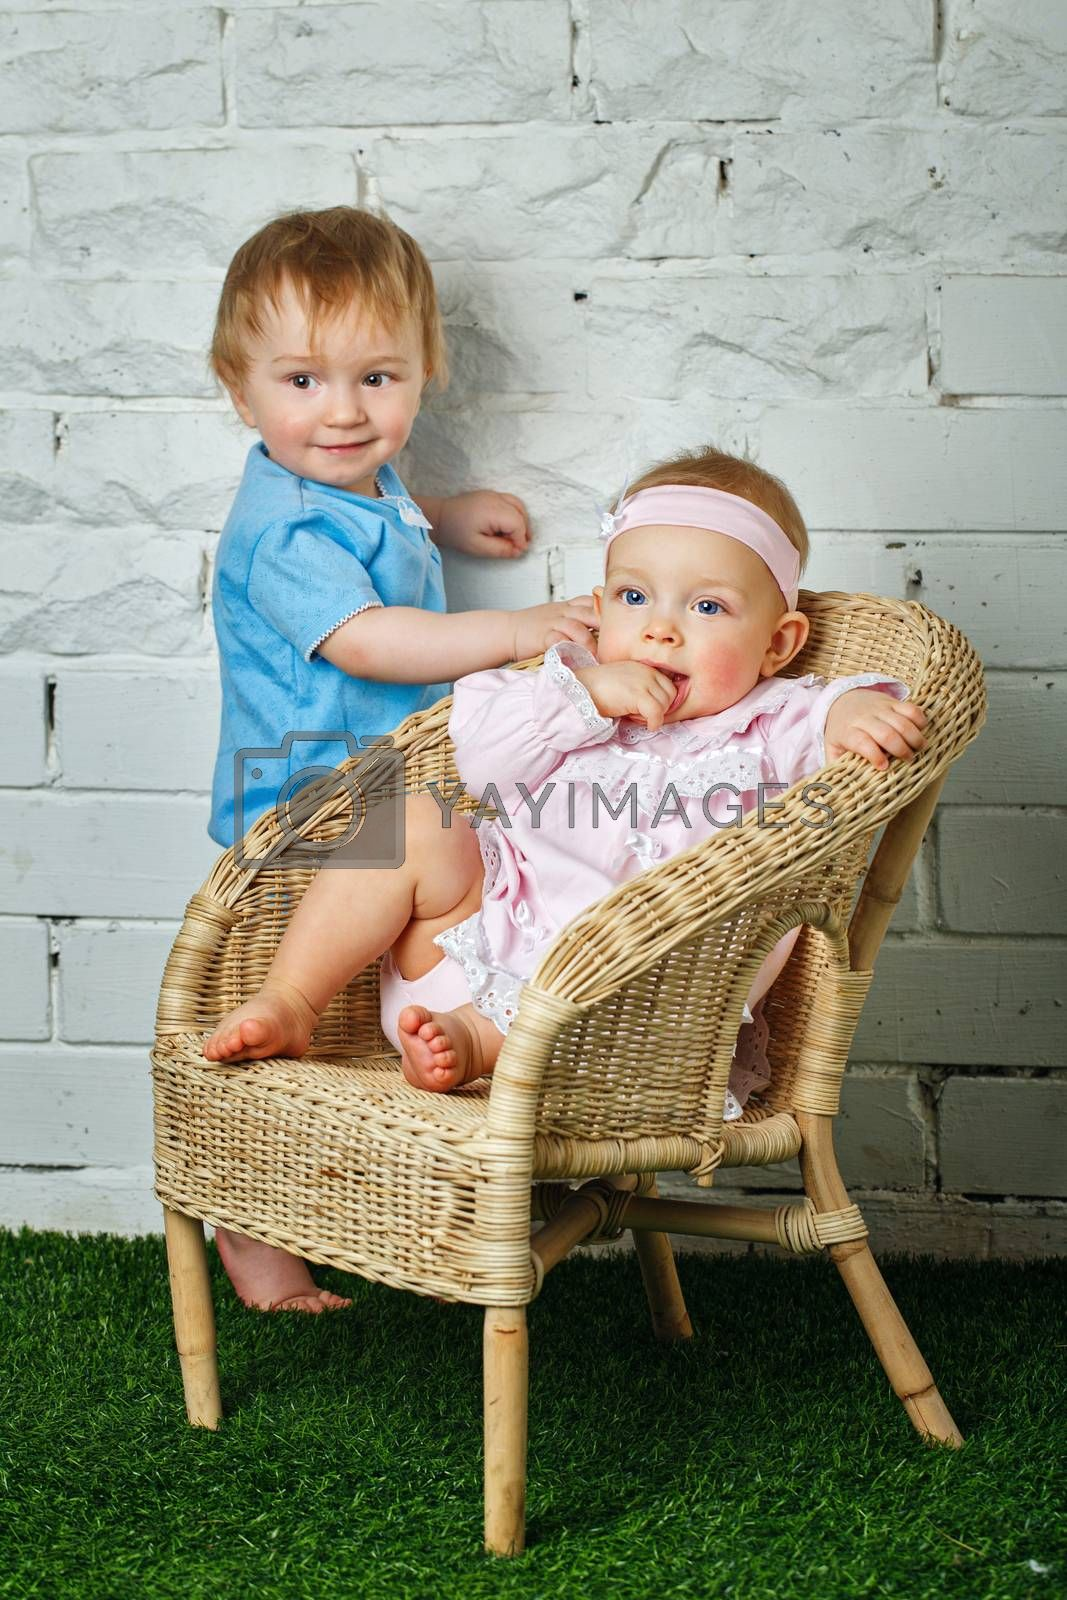 Brother and sister playing in the backyard next to the wicker chair